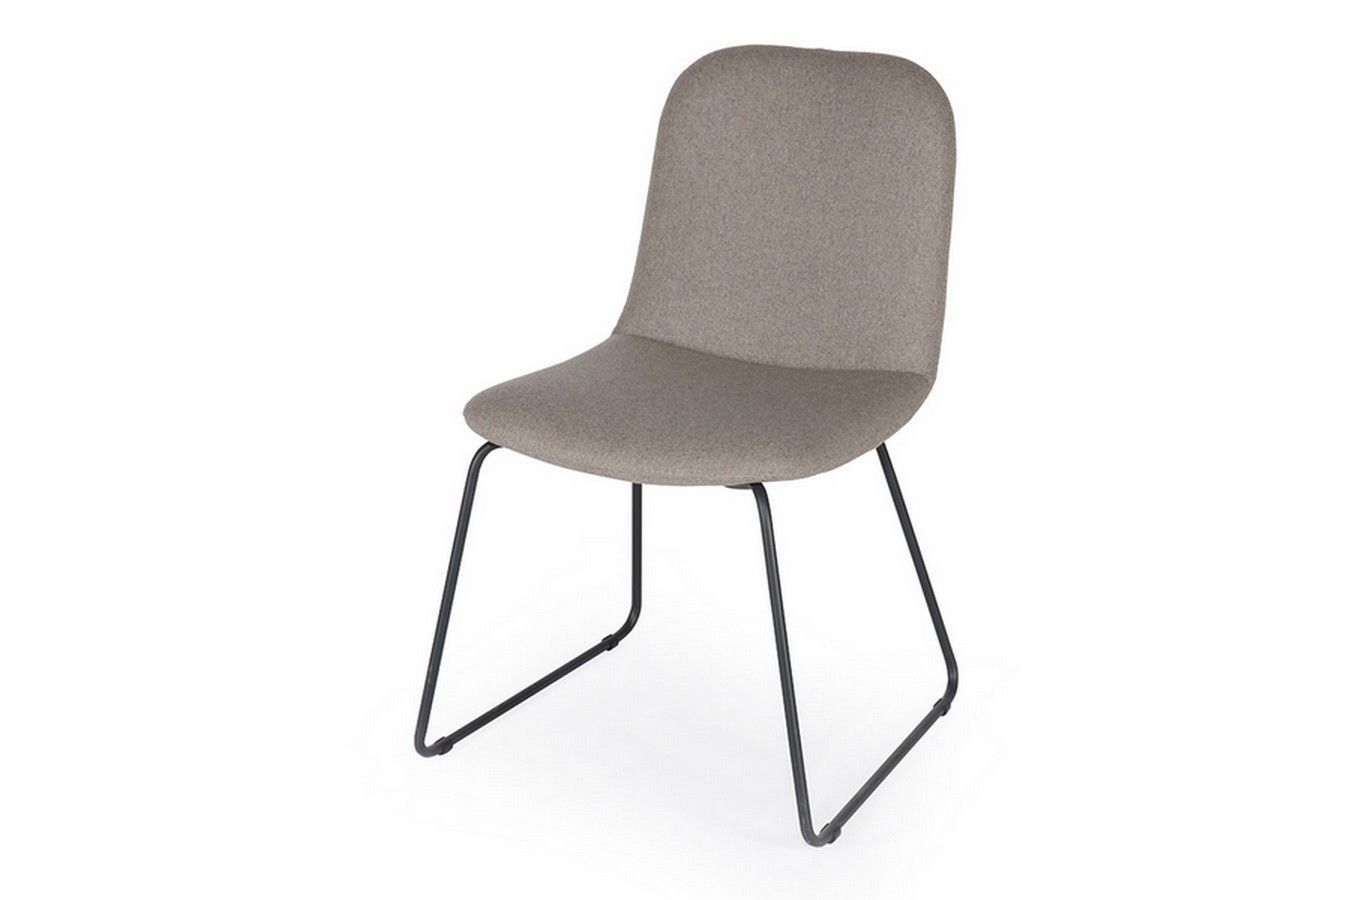 Stühle online kaufen bei lagerhaus.de | | stühle chairs stools and ...